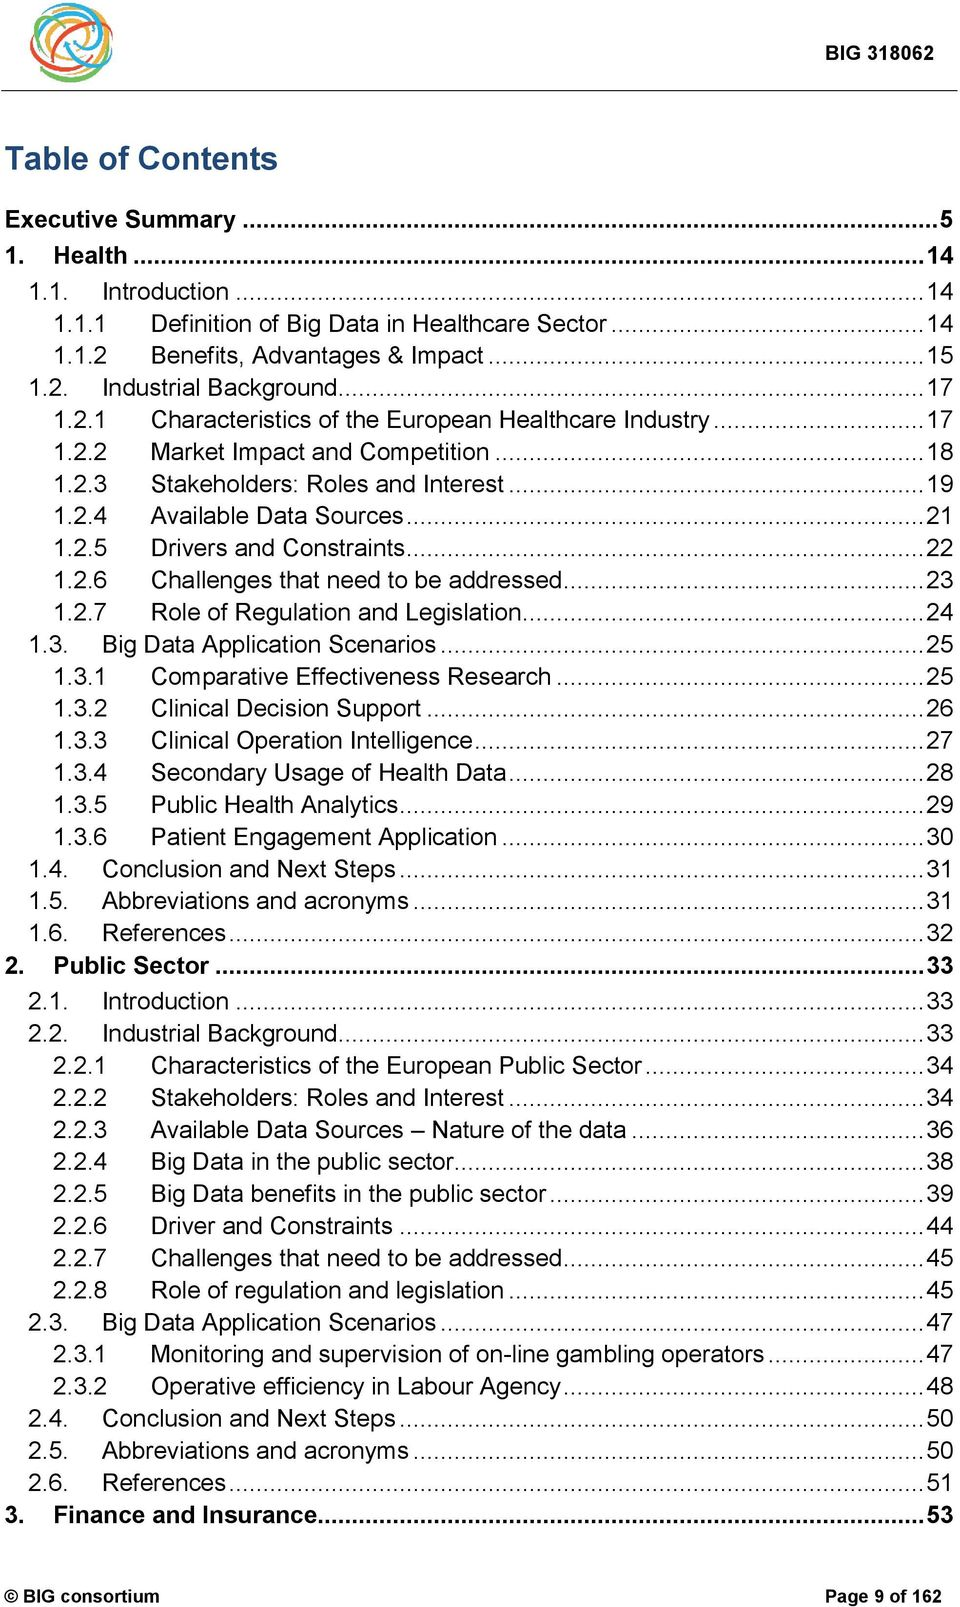 .. 22 1.2.6 Challenges that need to be addressed... 23 1.2.7 Role of Regulation and Legislation... 24 1.3. Big Data Application Scenarios... 25 1.3.1 Comparative Effectiveness Research... 25 1.3.2 Clinical Decision Support.